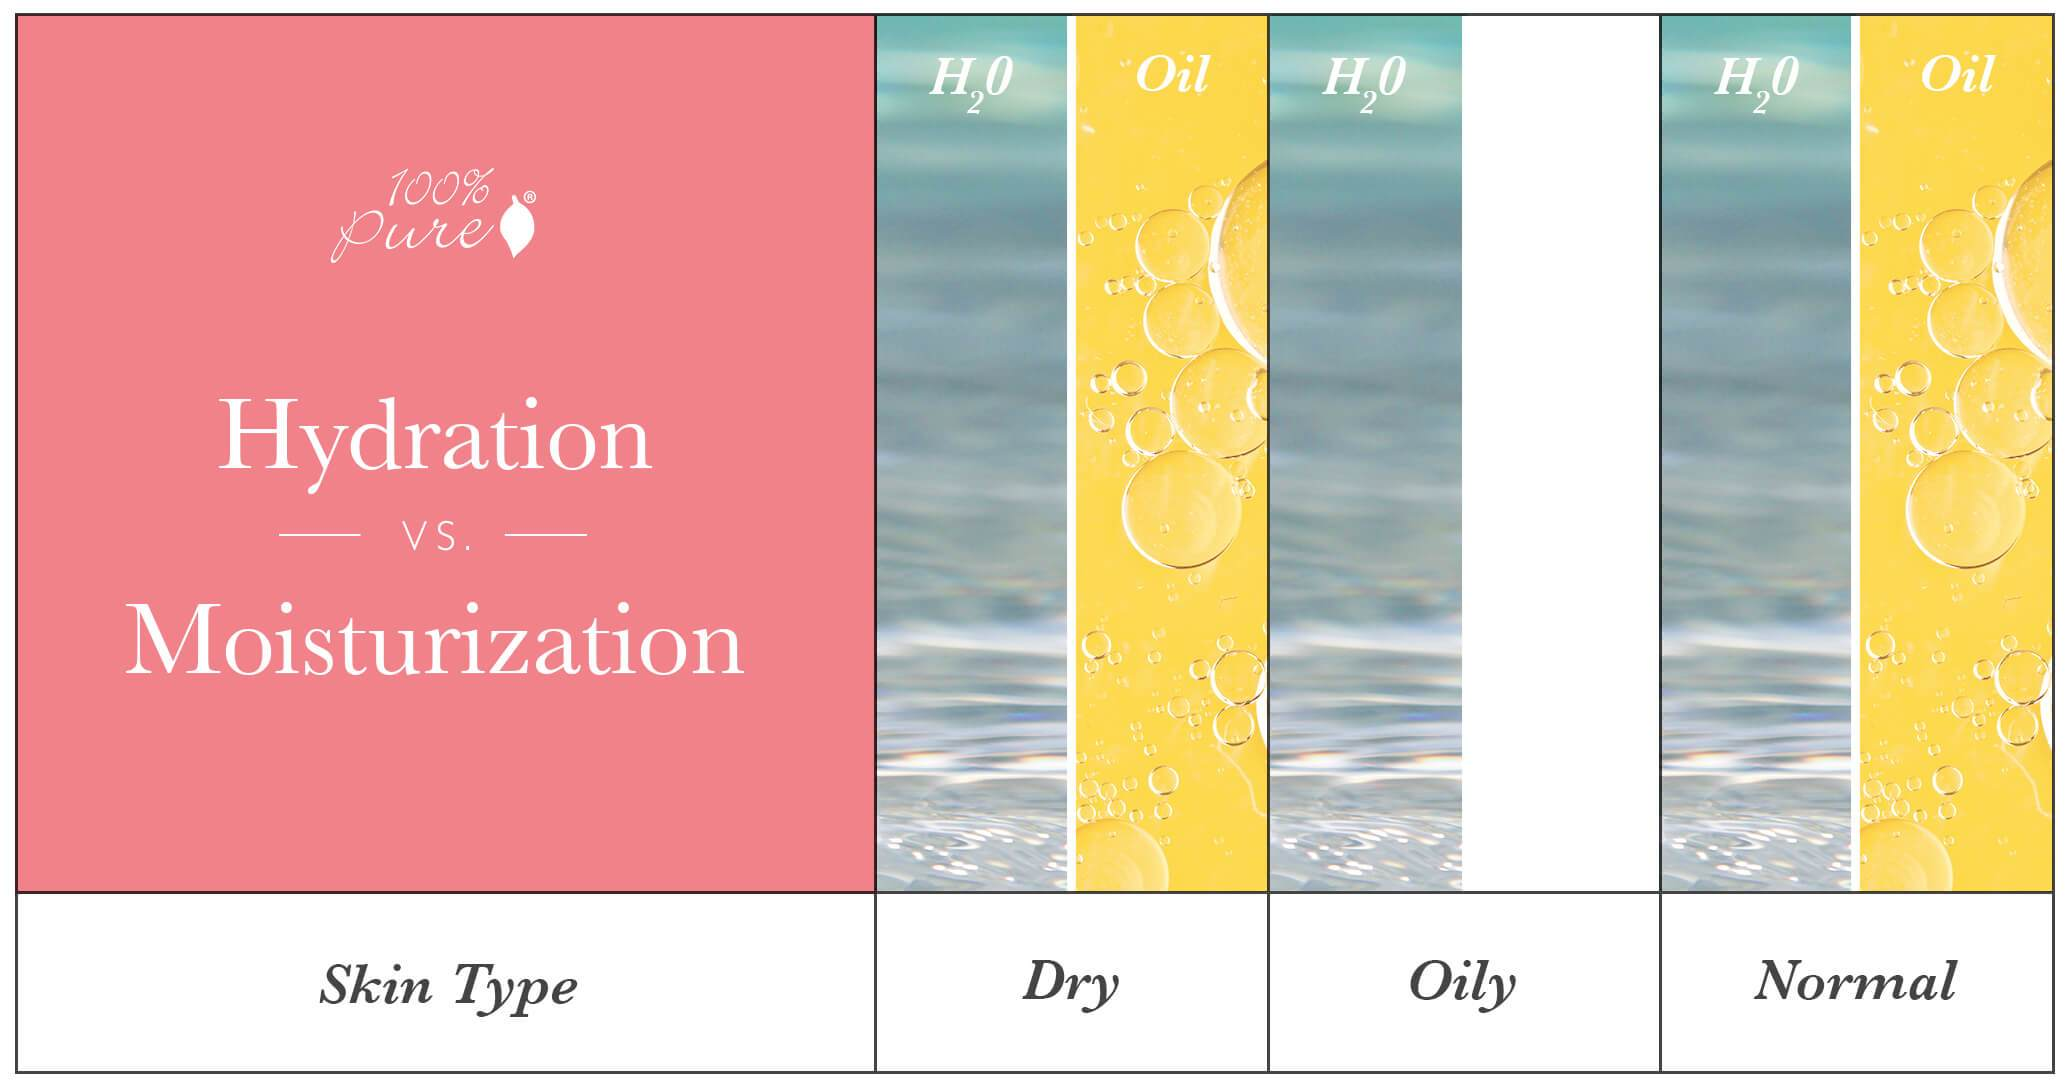 Moisture_and_Hydration_Chart_Skin_Type